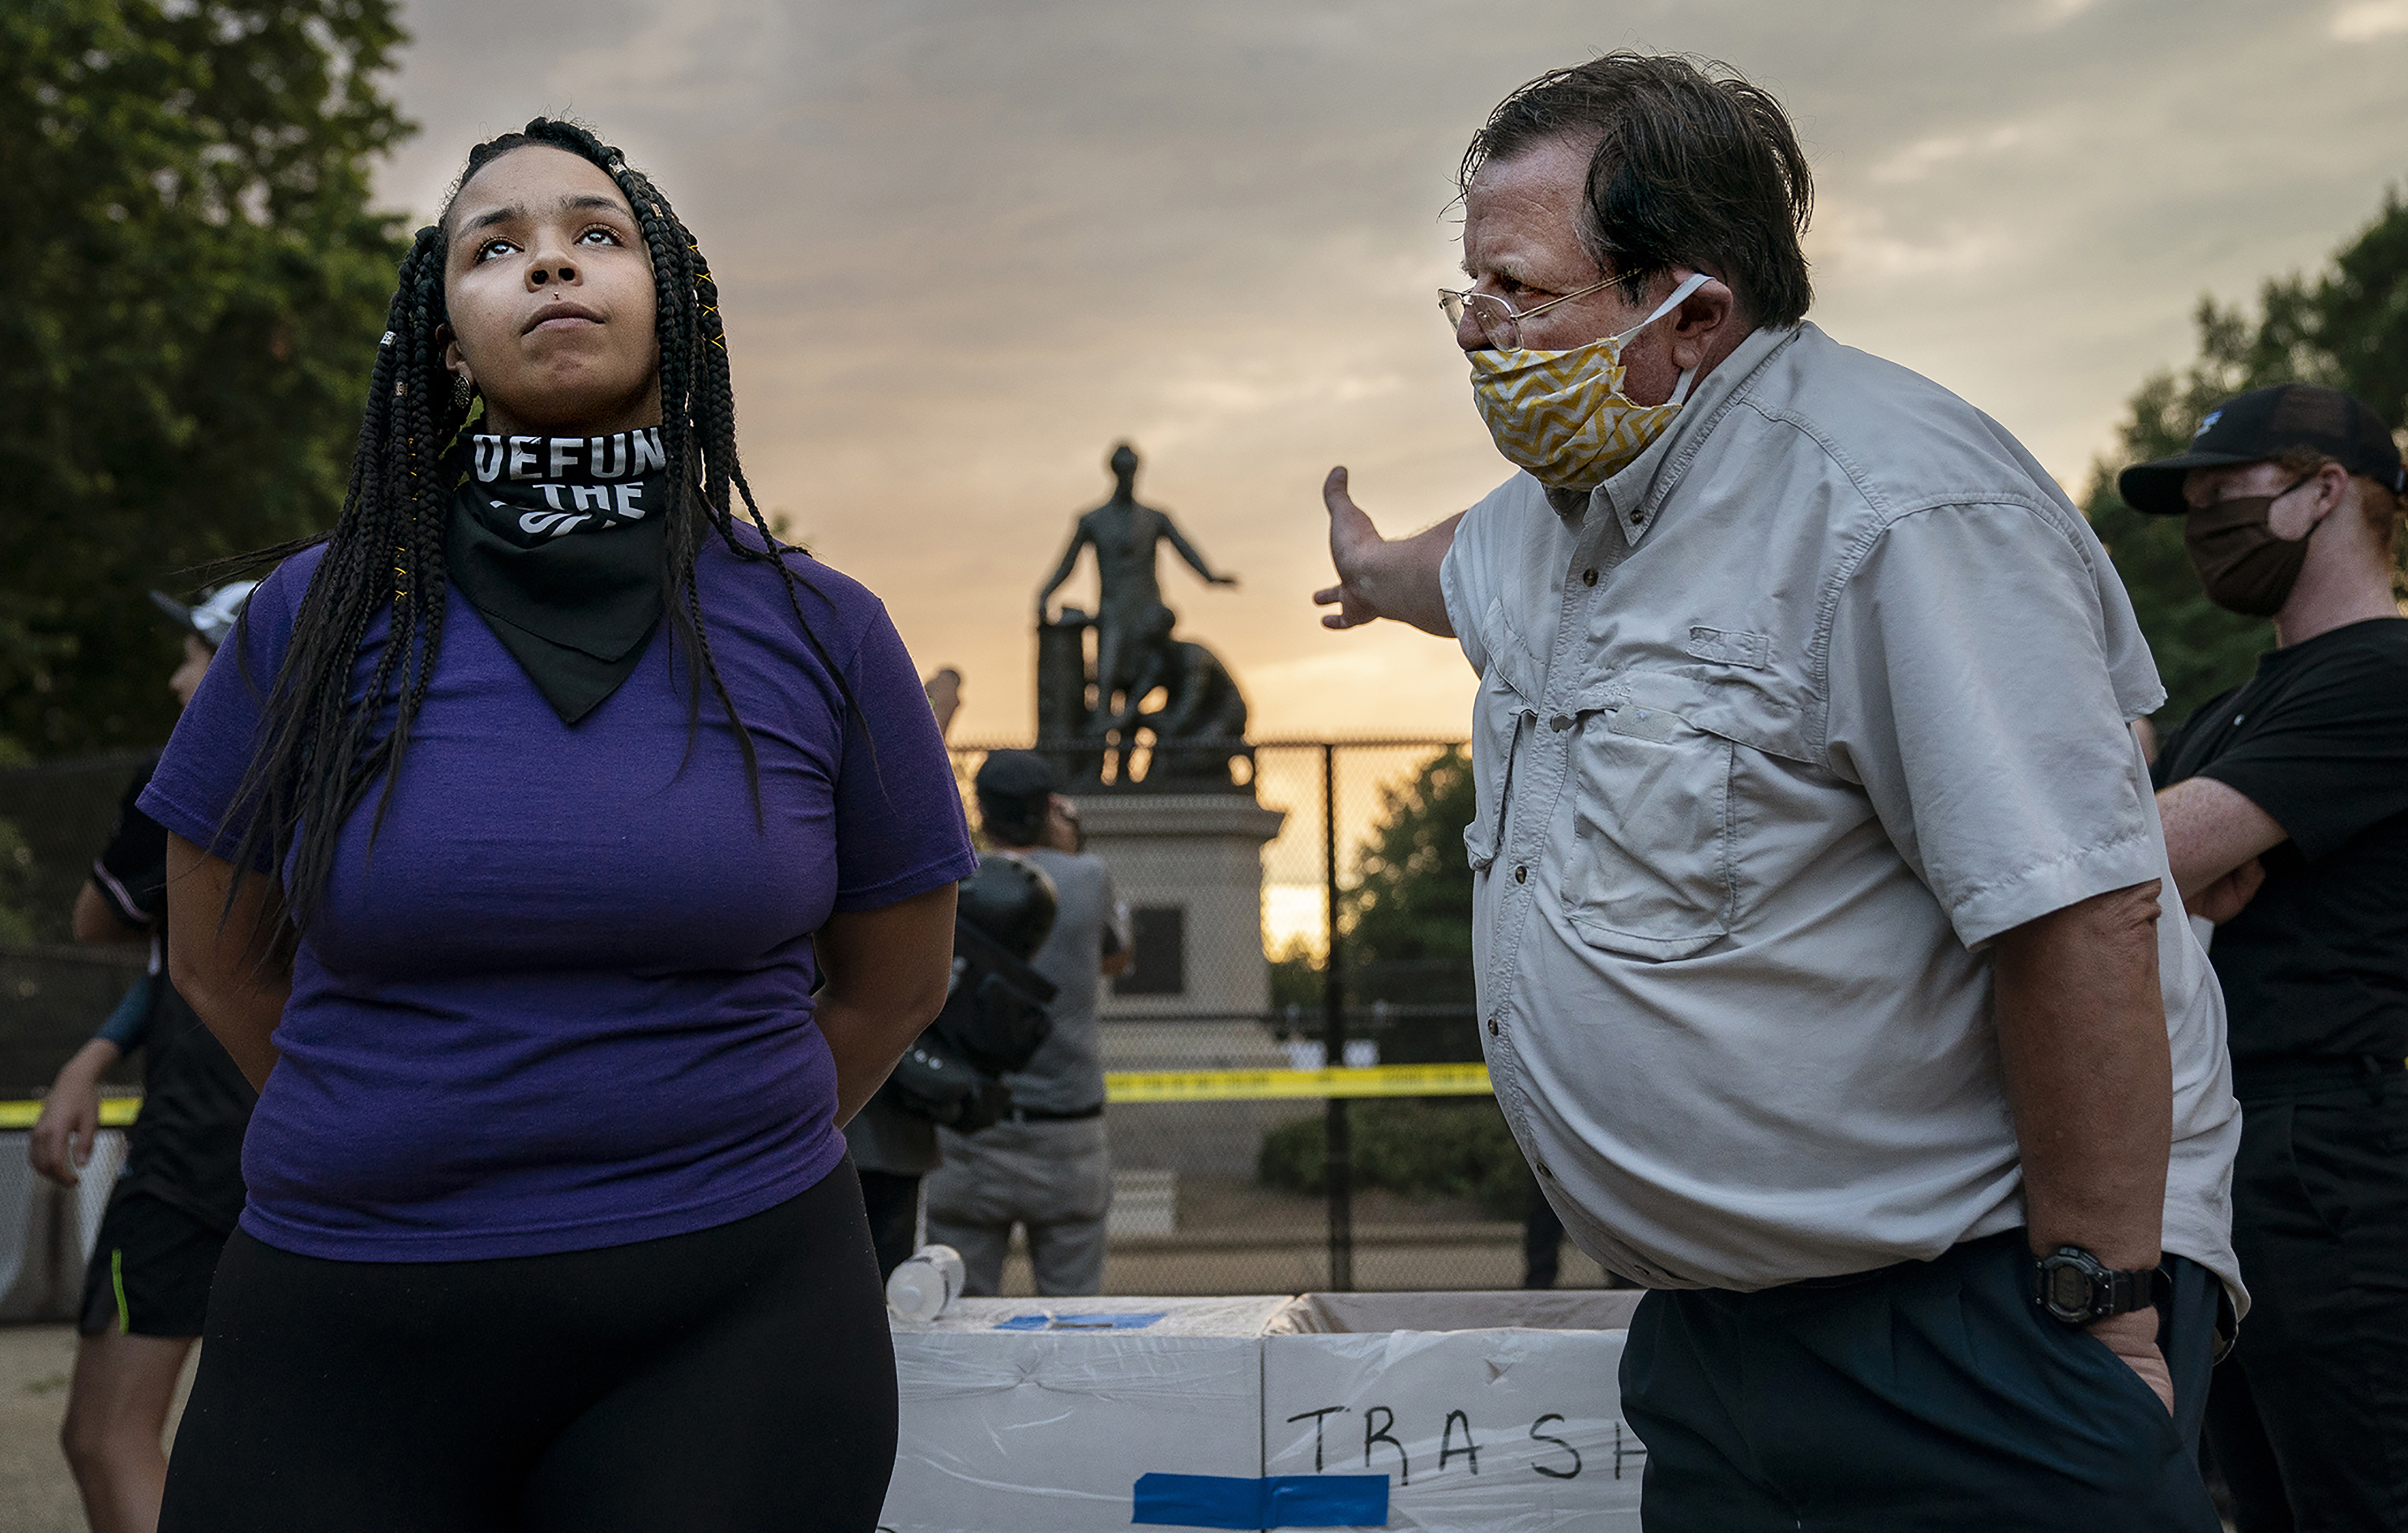 Emancipation Memorial Debate, Evelyn Hockstein, United States, for The Washington Post